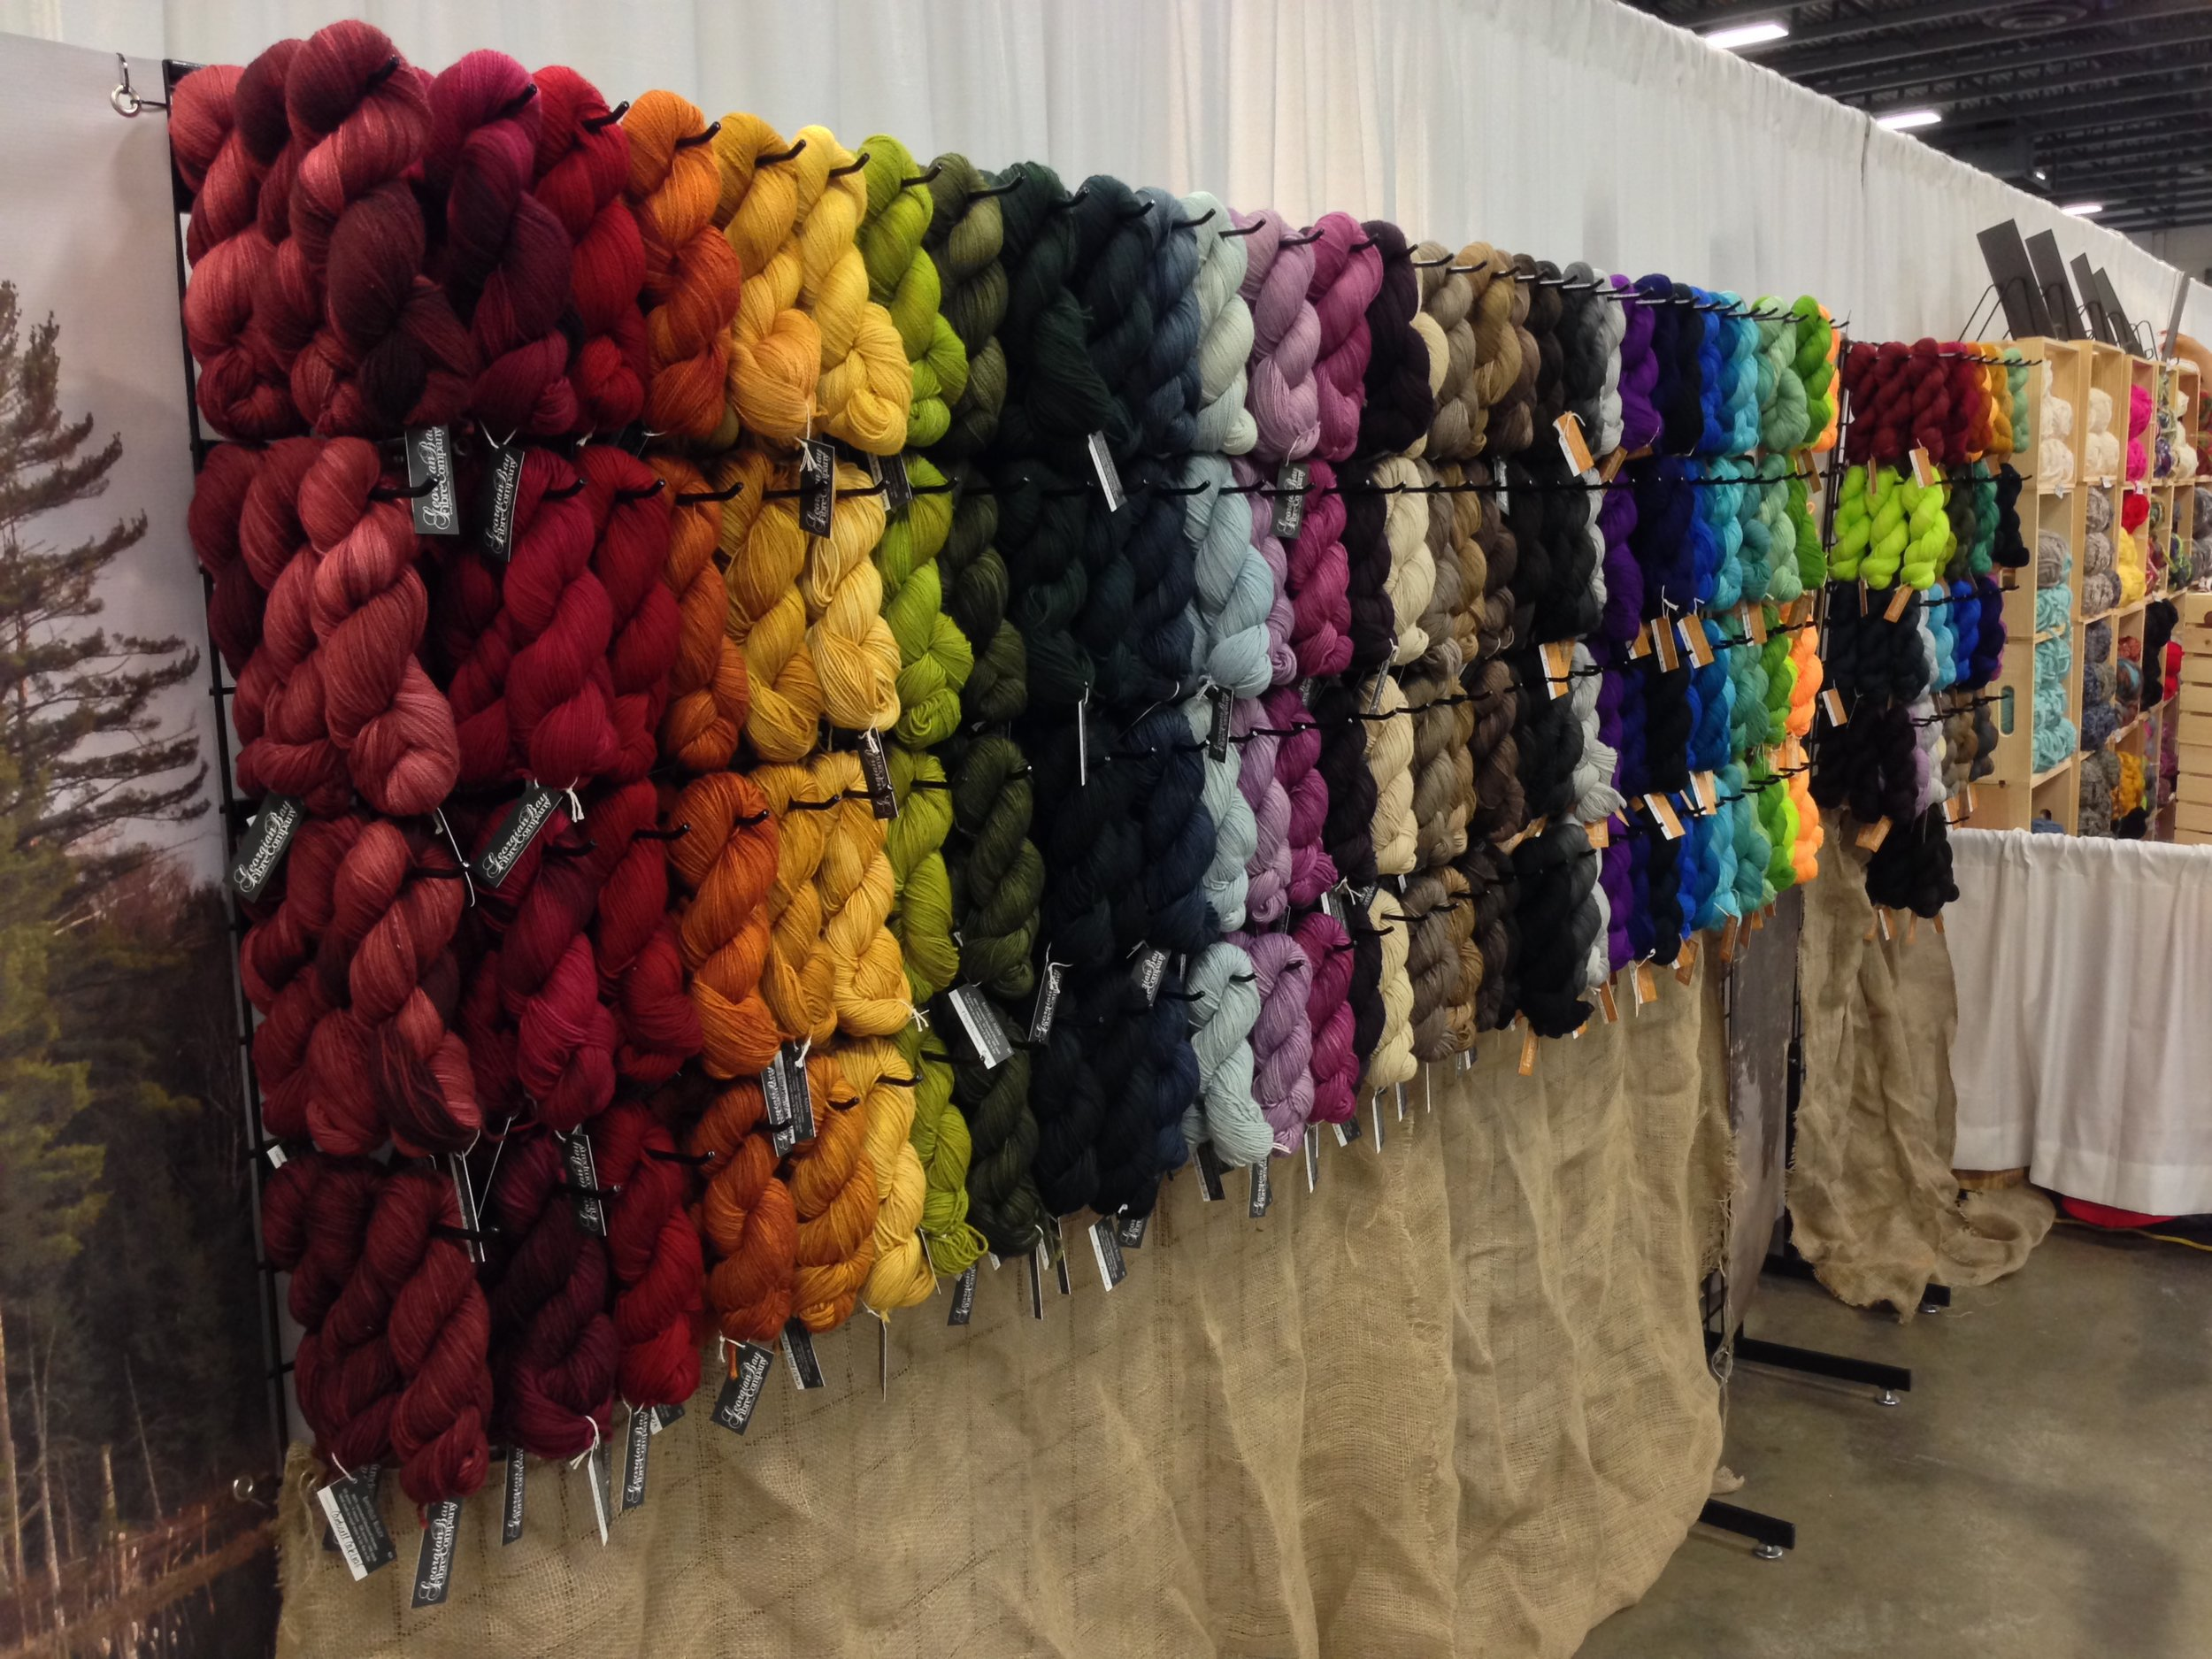 A photo of our booth from last year's KW Knitter's Fair. We are in the same location as last year, so will be easy to find!